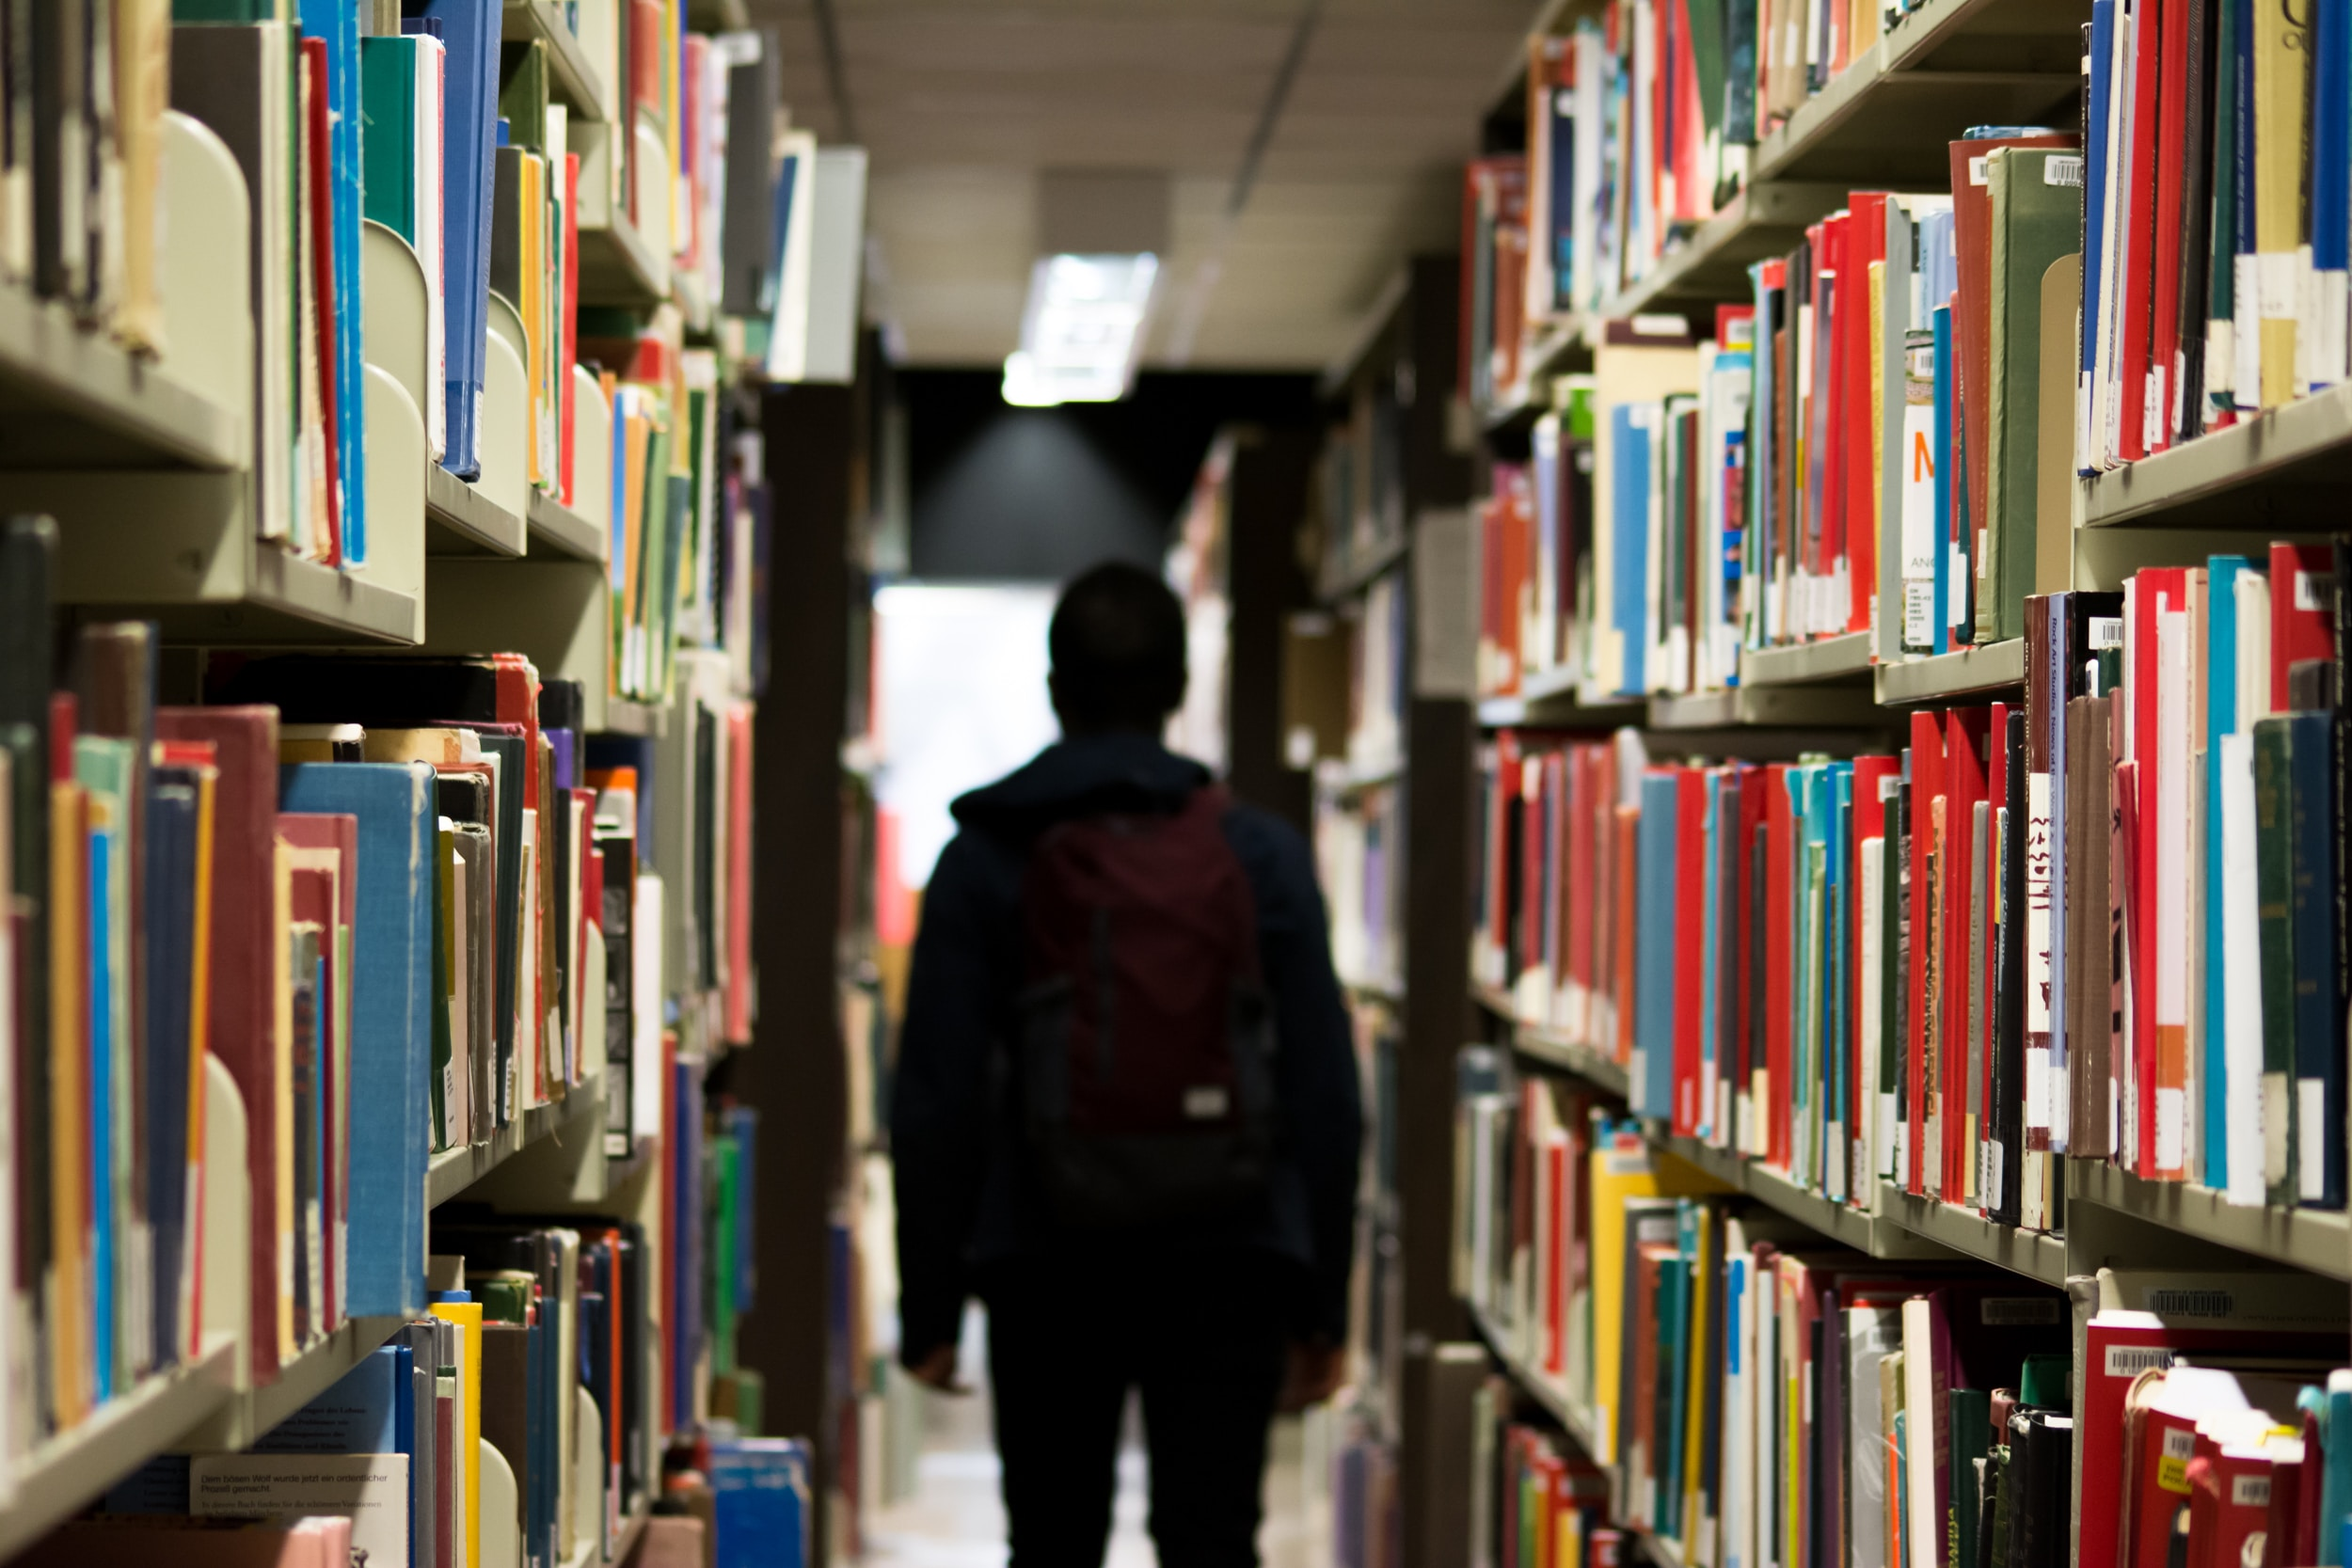 International student walking in a library.